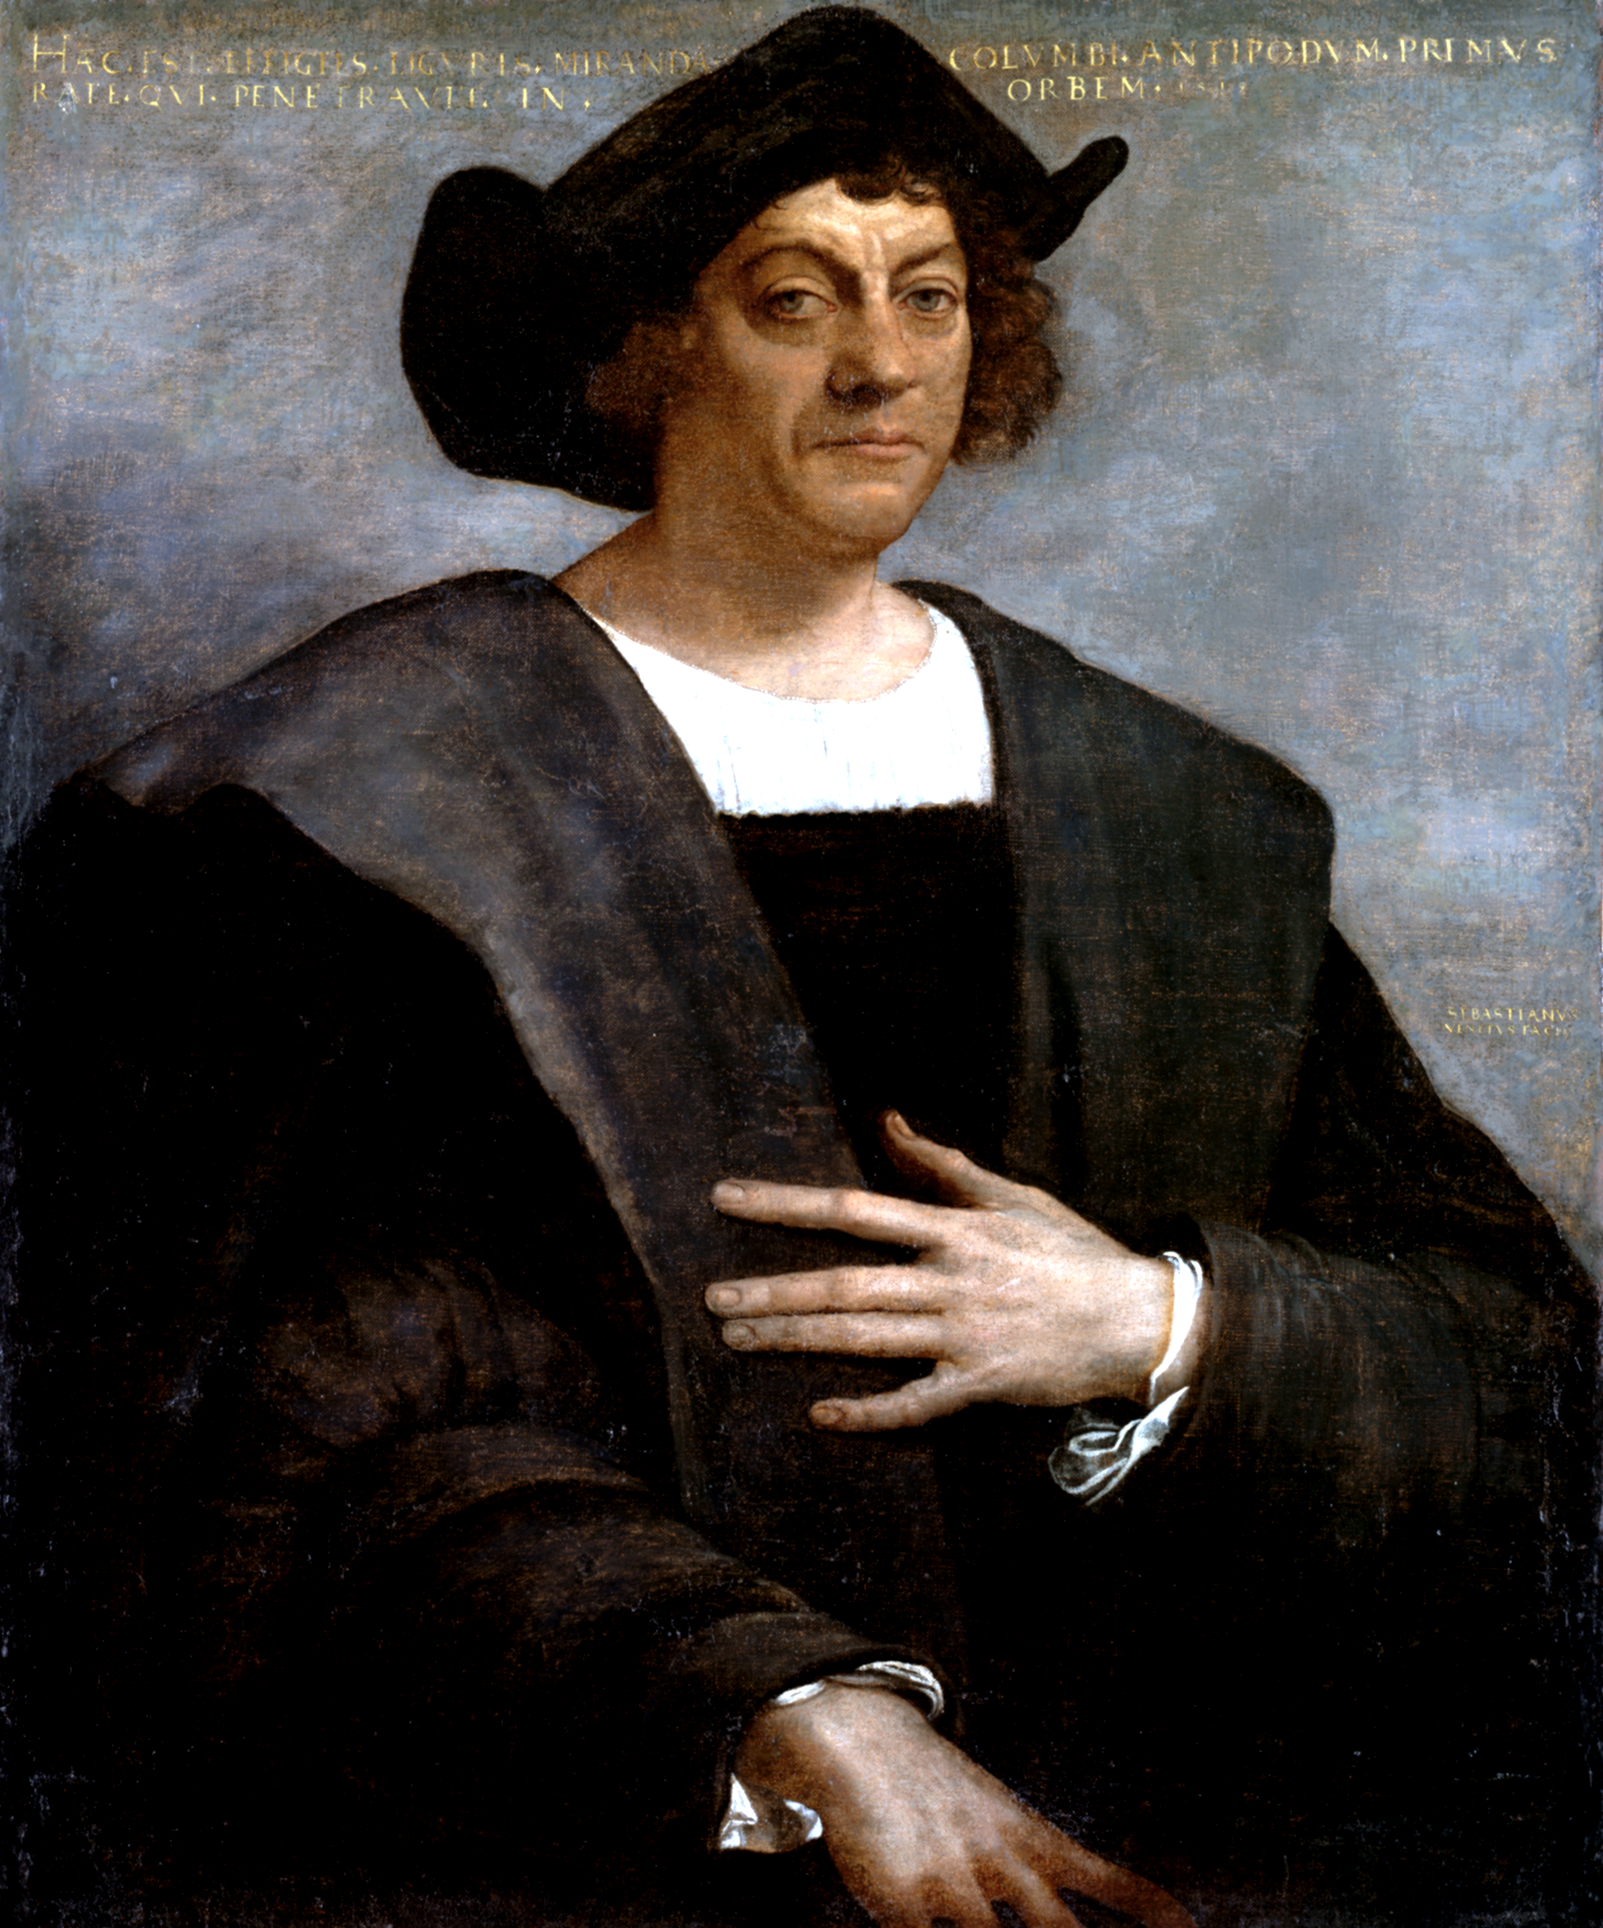 WHOLE BODY - WHOLE LOVE - WHOLE HOLIDAY: COLUMBUS DAY IS A LEGAL HOLIDAY COMMEMORATING THE DISCOVERY OF AMERICA ON OCTOBER 12, 1492.